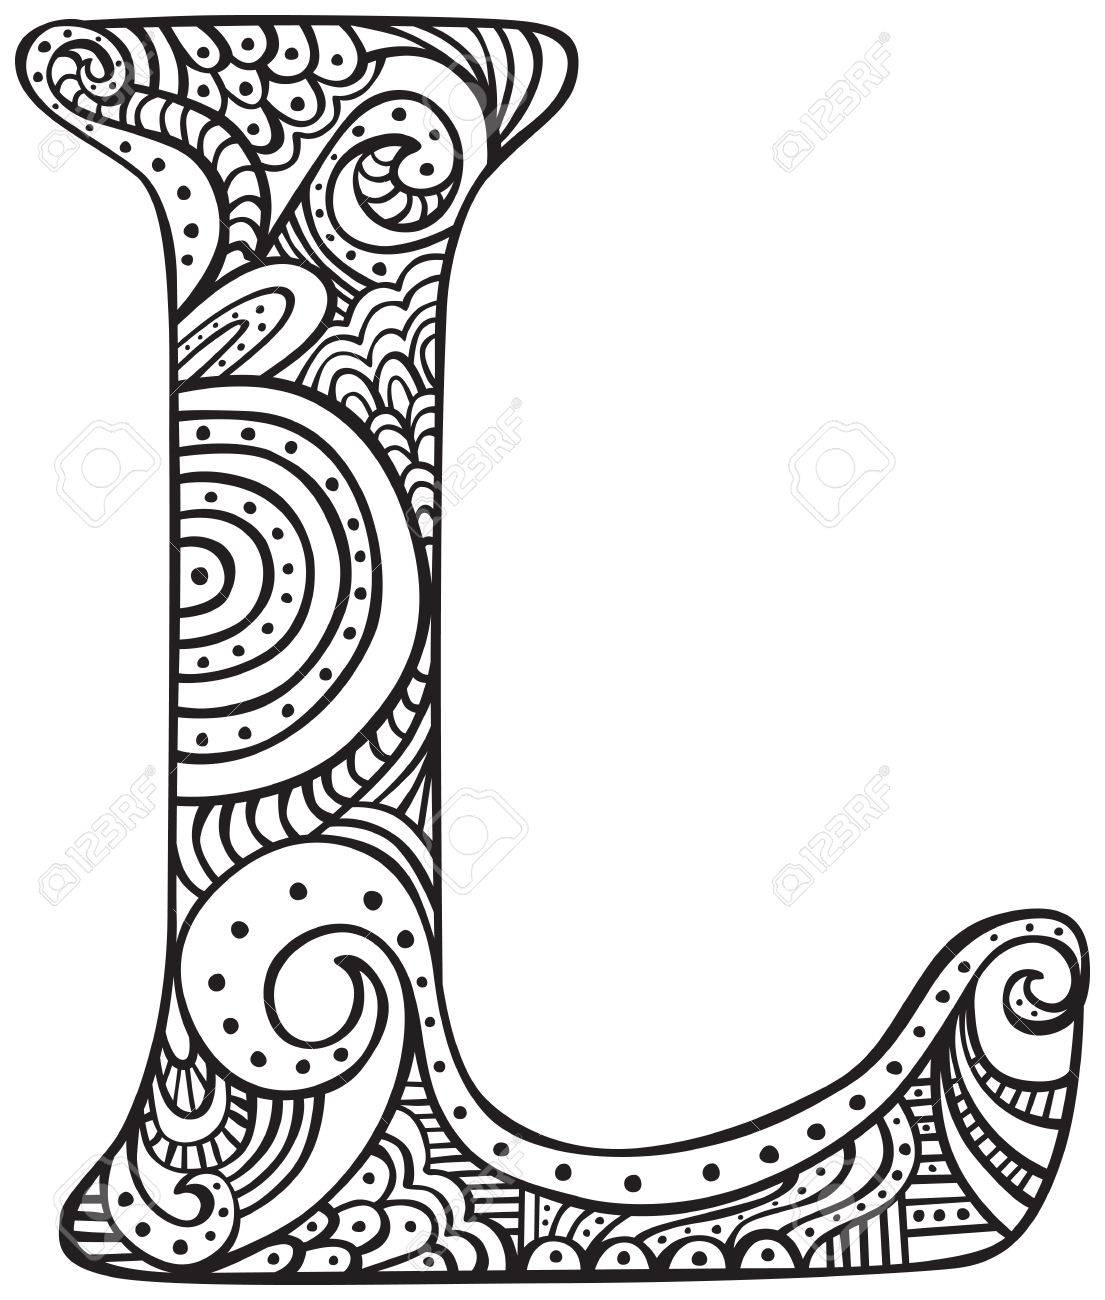 Hand Drawn Capital Letter L In Black Coloring Sheet For Adults